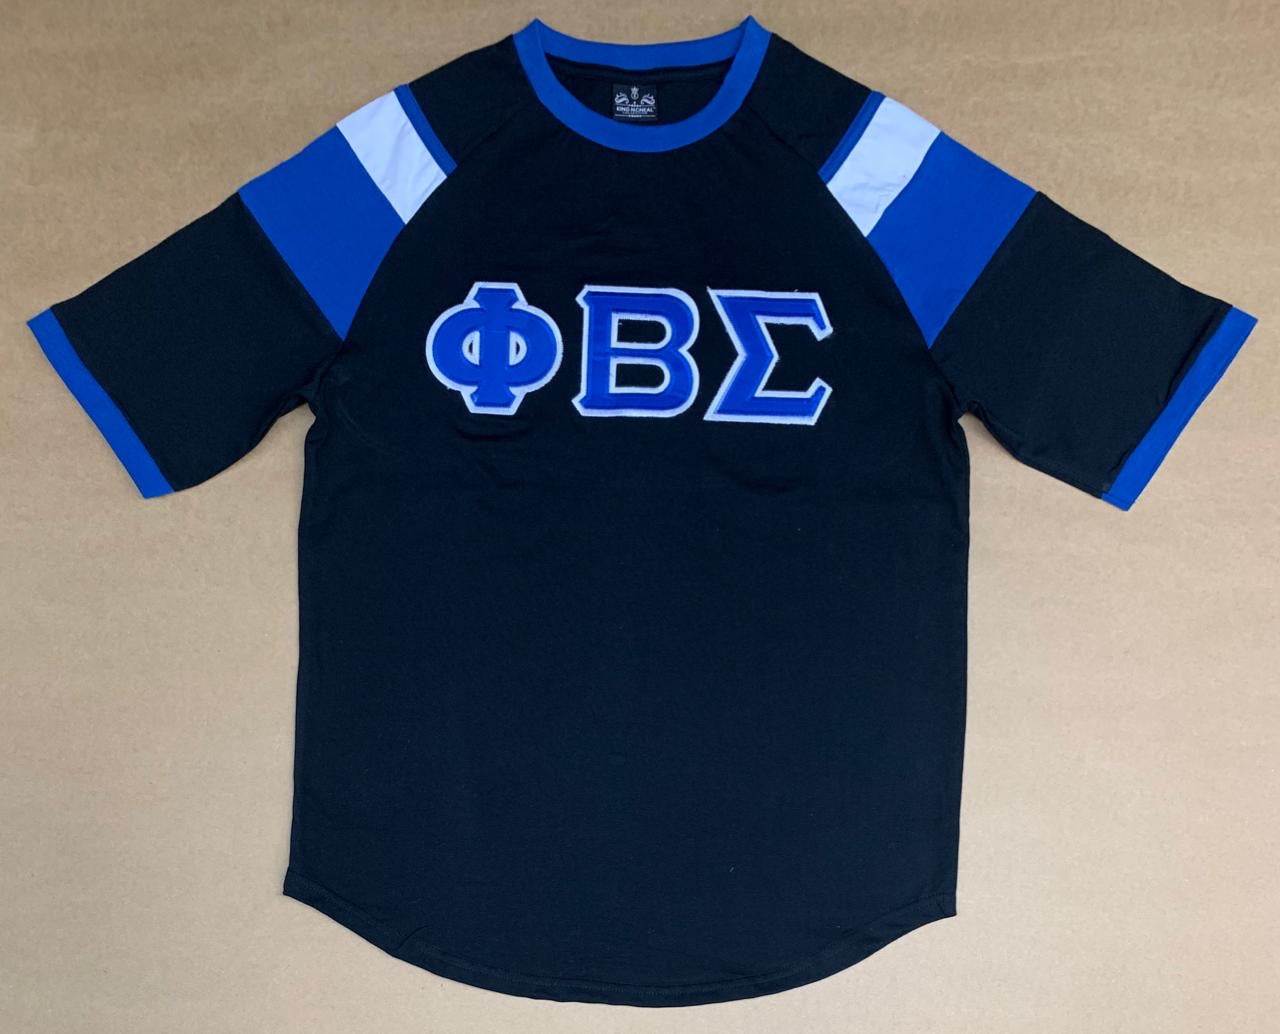 Black Sigma shirt